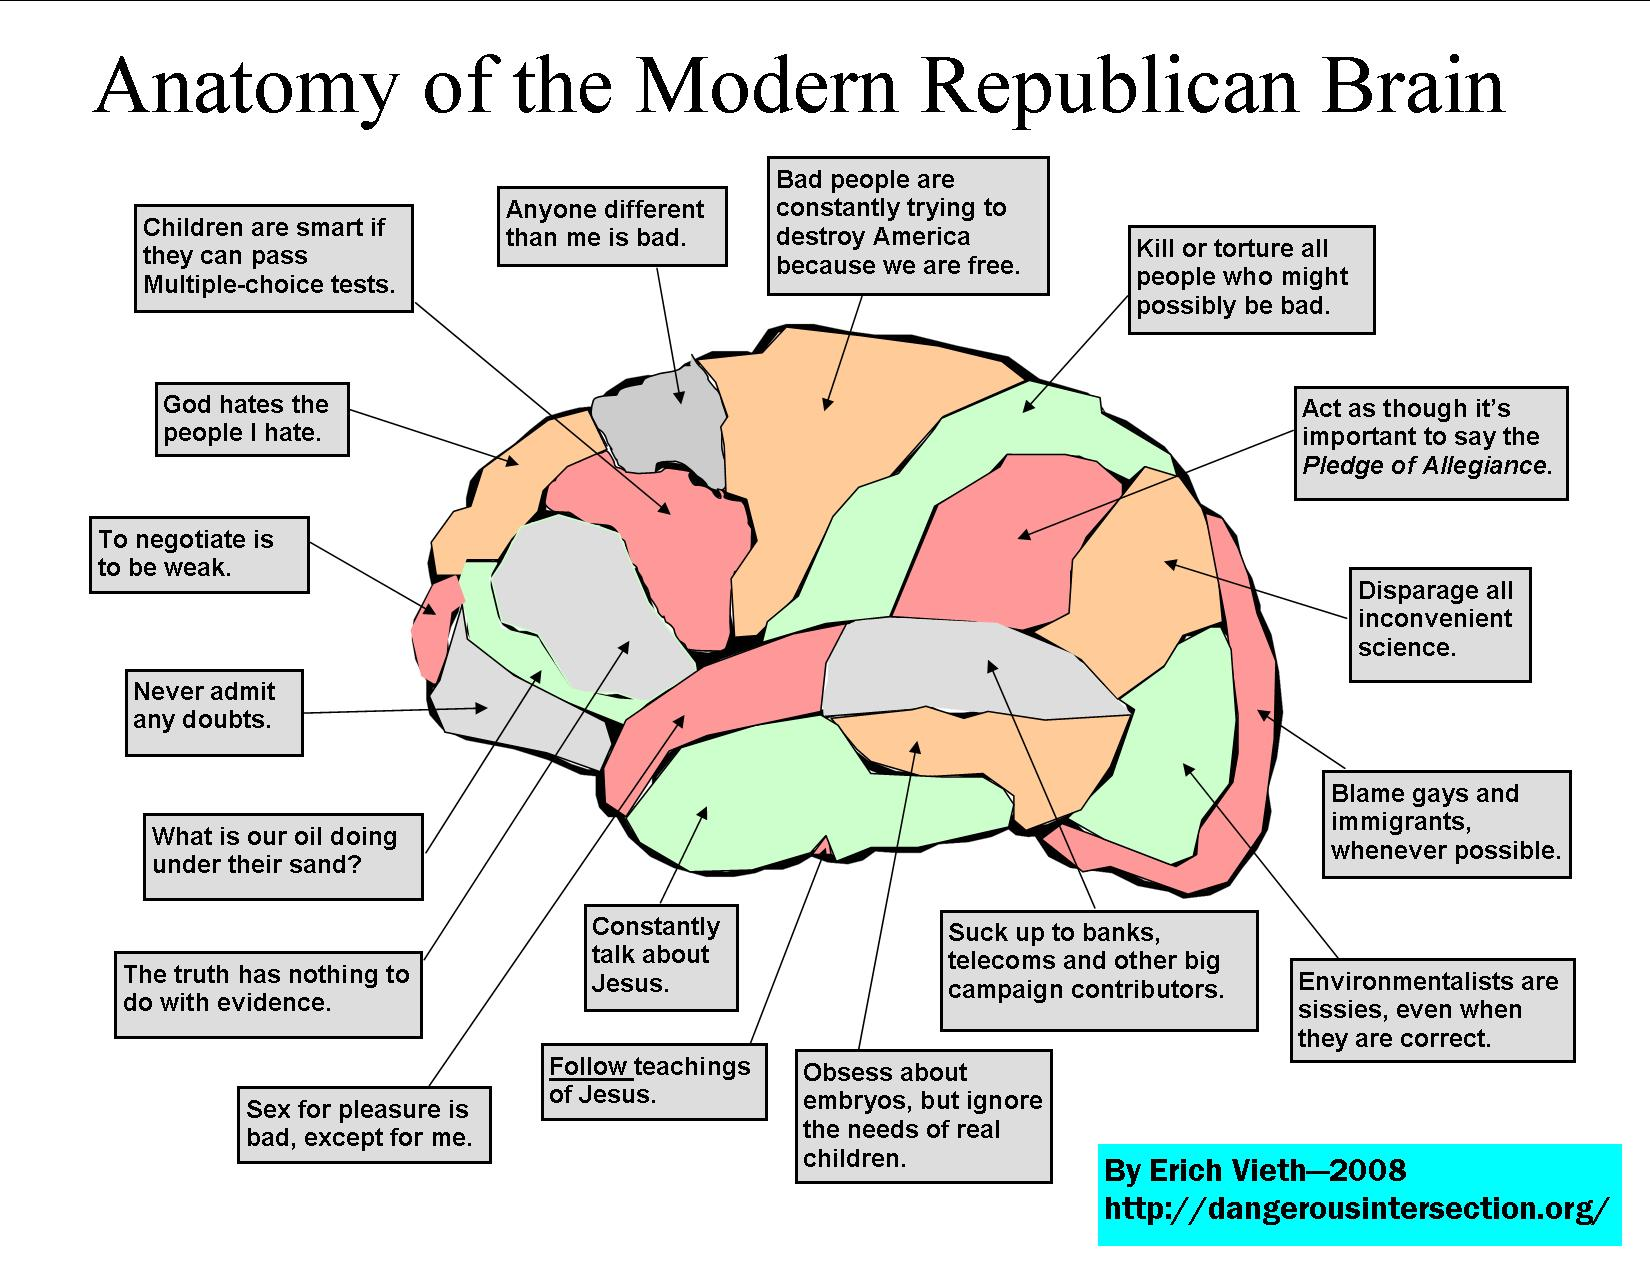 The Modern Republican Brain